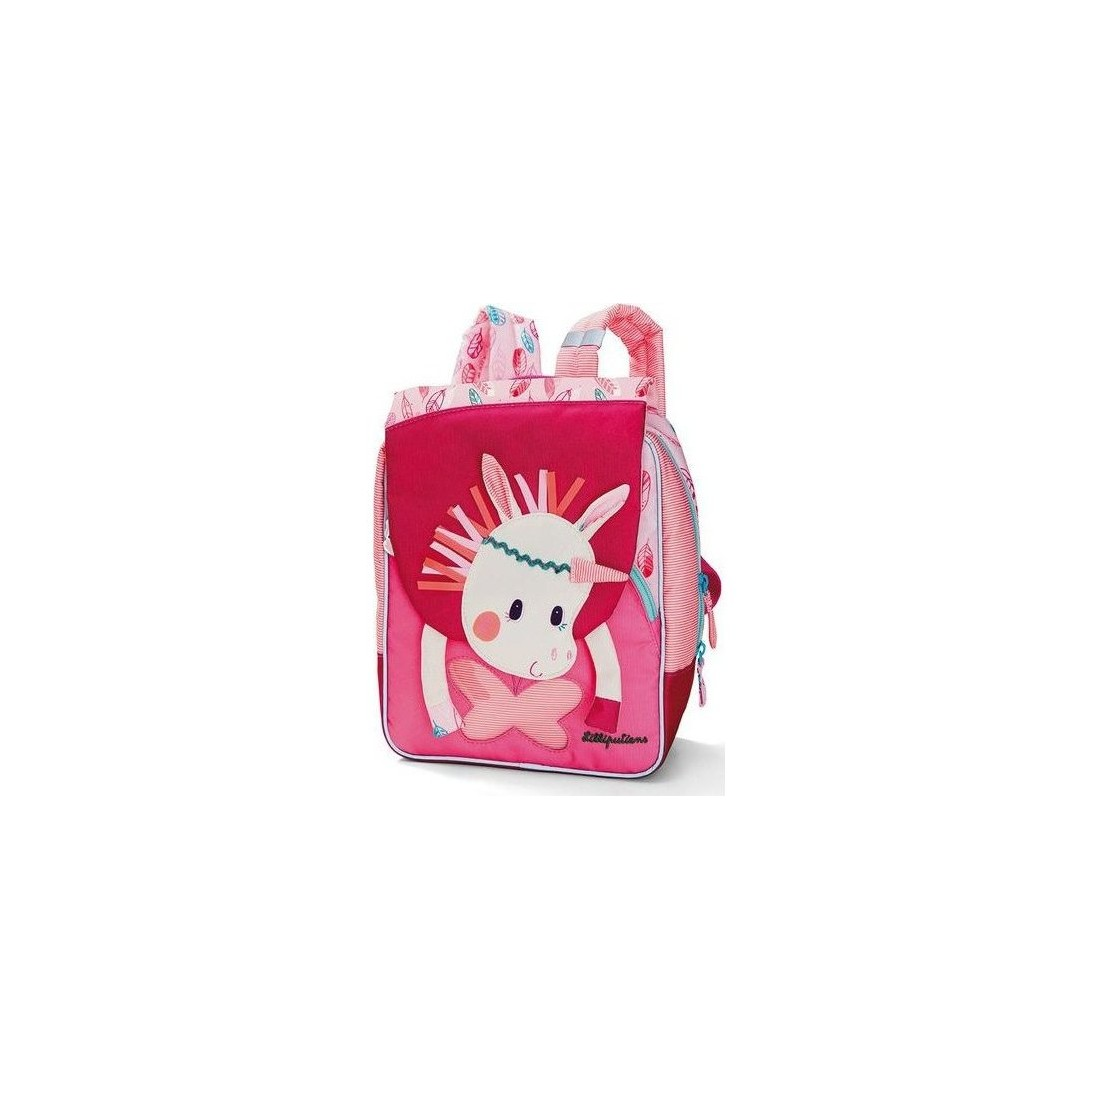 Cartable A5 Louise Lilliputiens